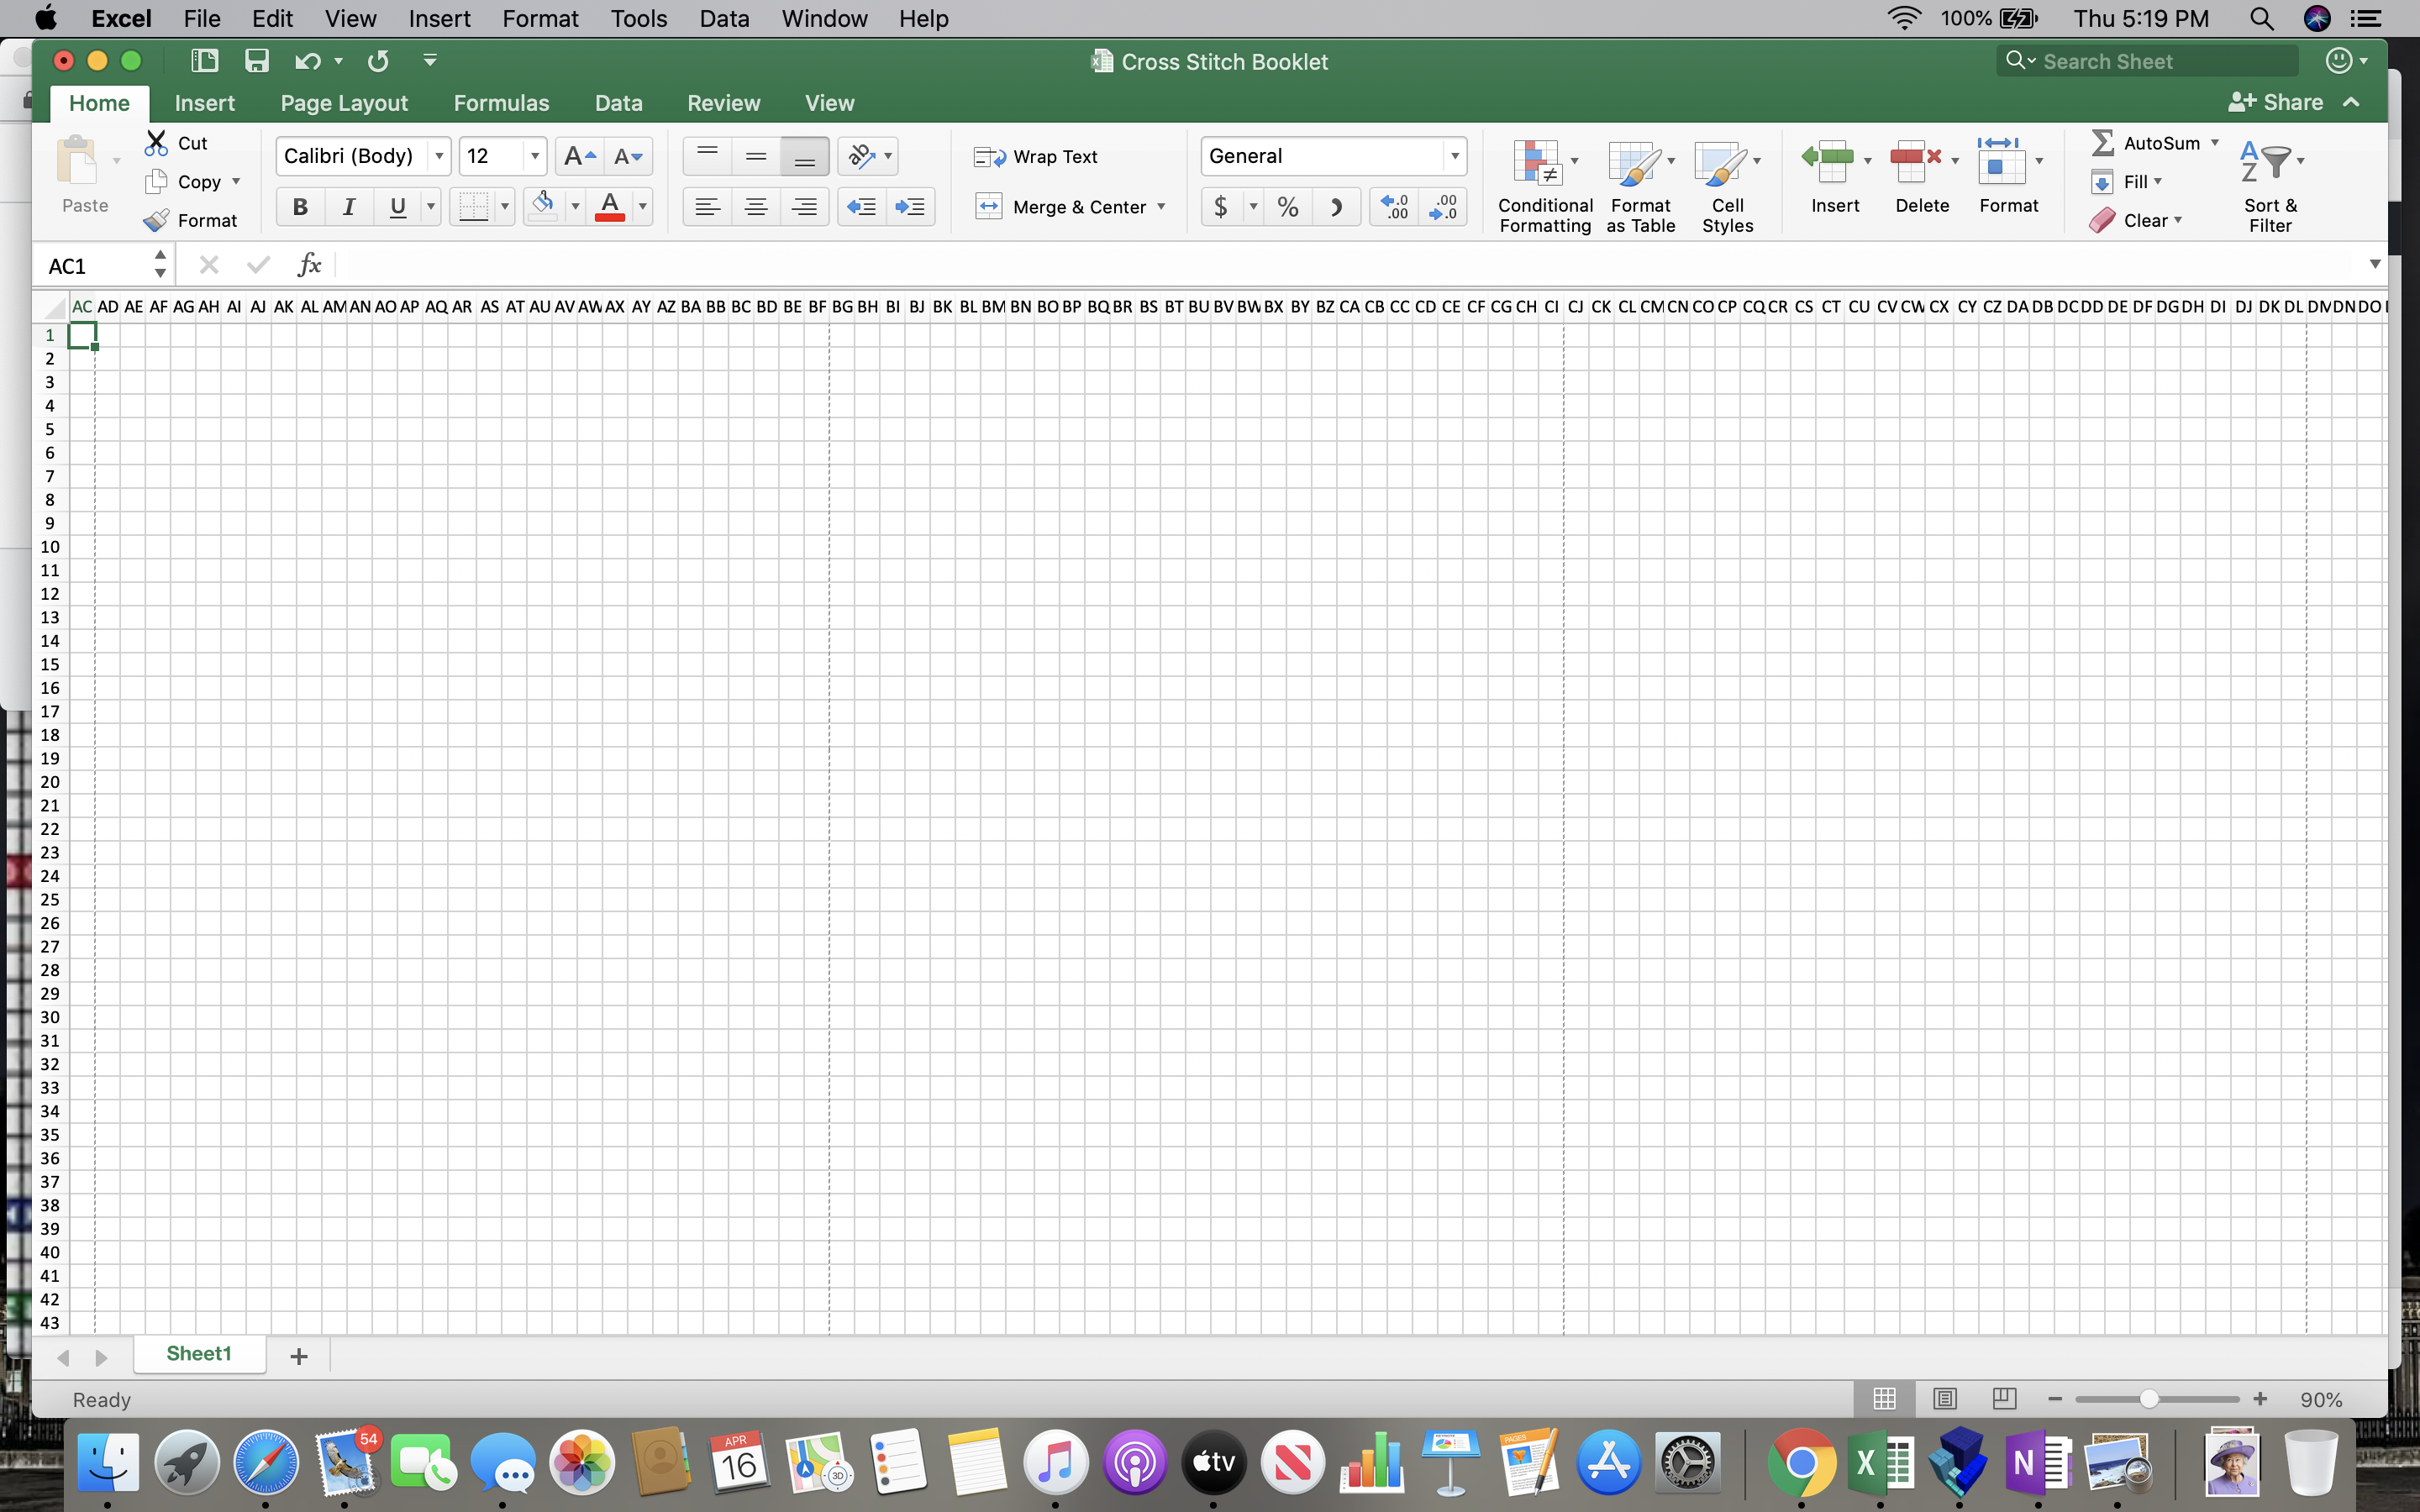 My empty spreadsheet set up as a cross stitch pattern grid in Microsoft Excel